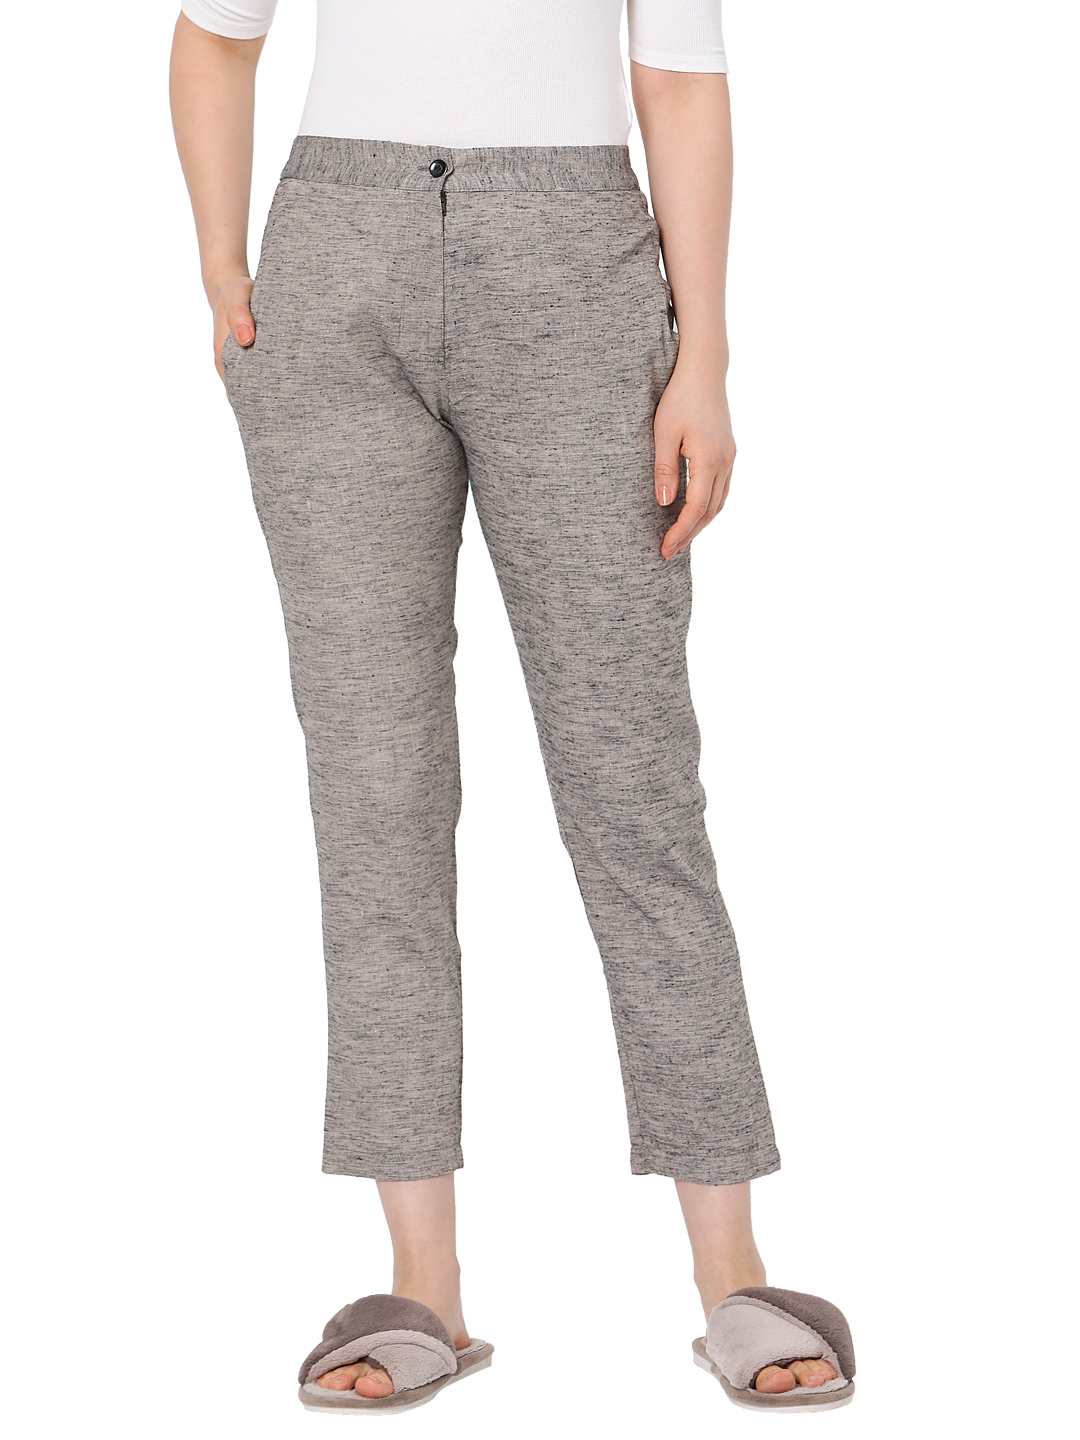 Smarty Pants | Smarty pants women's cotton dark khaki color ankle length tapered fit trouser